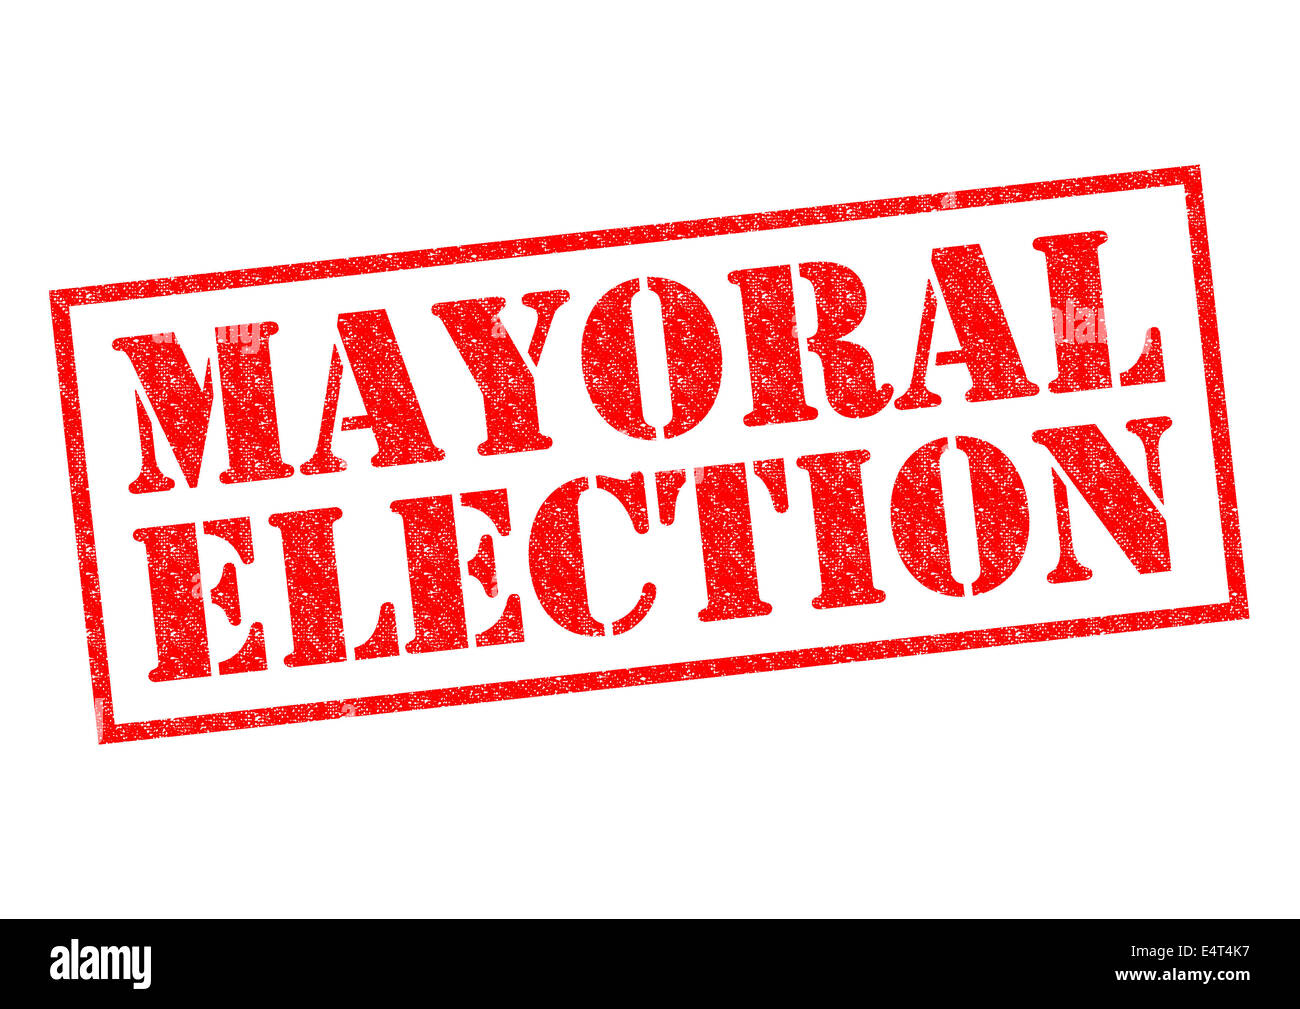 MAYORAL ELECTION red Rubber Stamp over a white background. - Stock Image